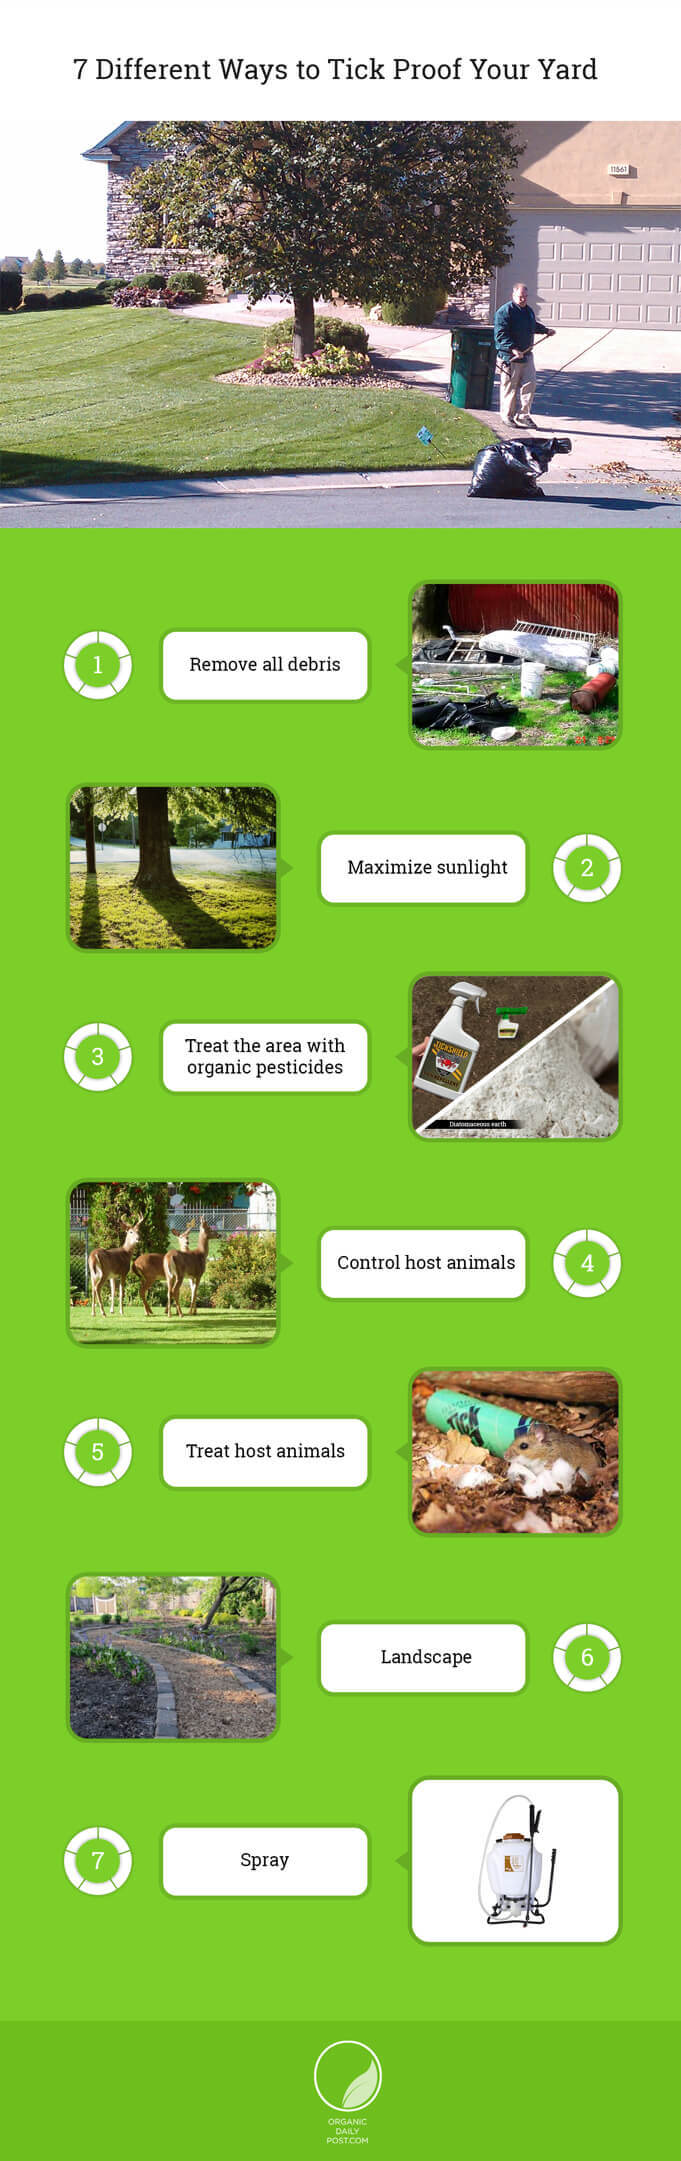 7 Different Ways to Tick Proof Your Yard